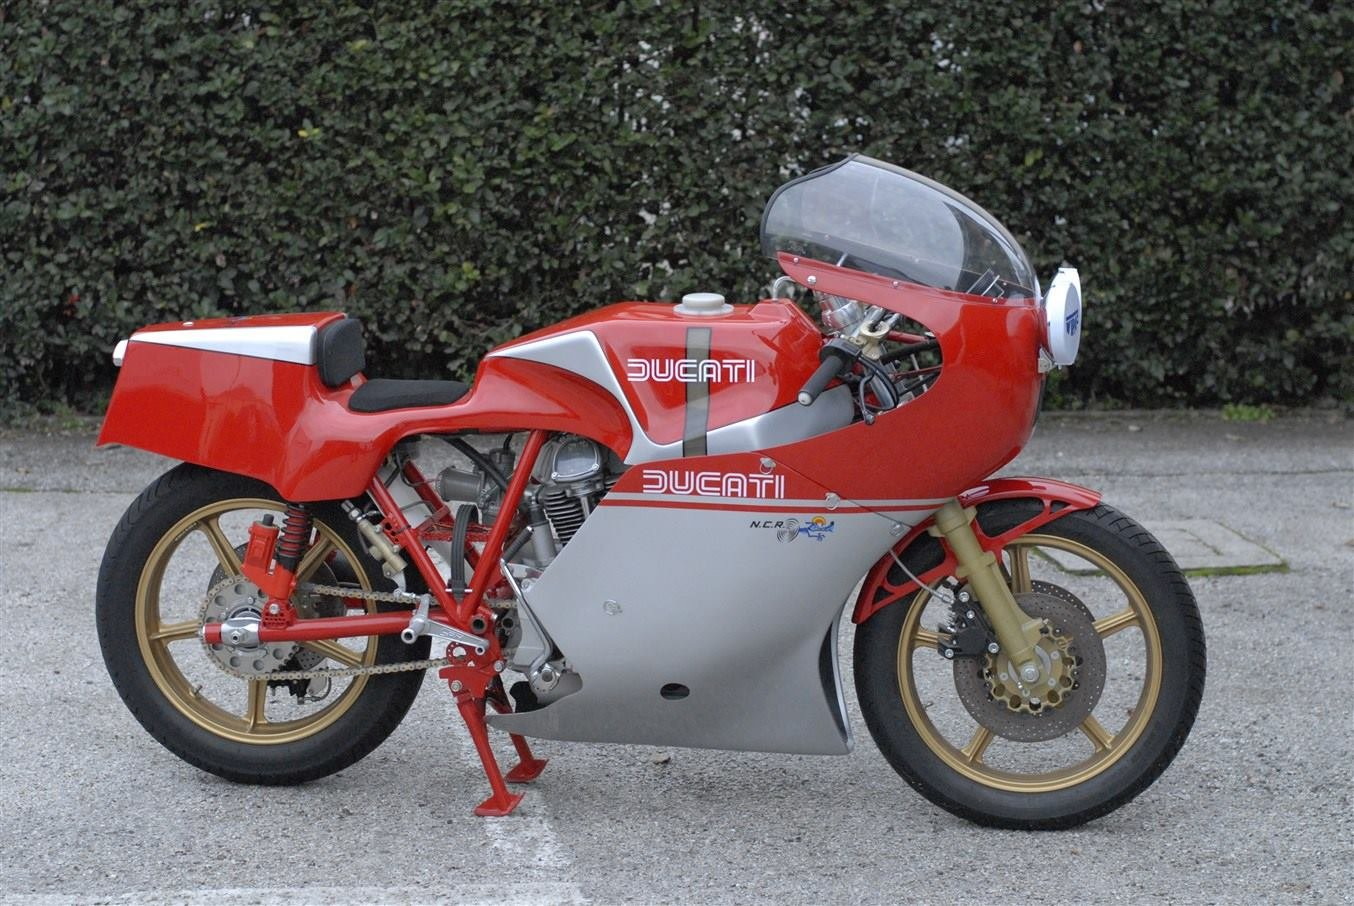 1978 Ducati DASPA NCR endurance For Sale (picture 2 of 2)